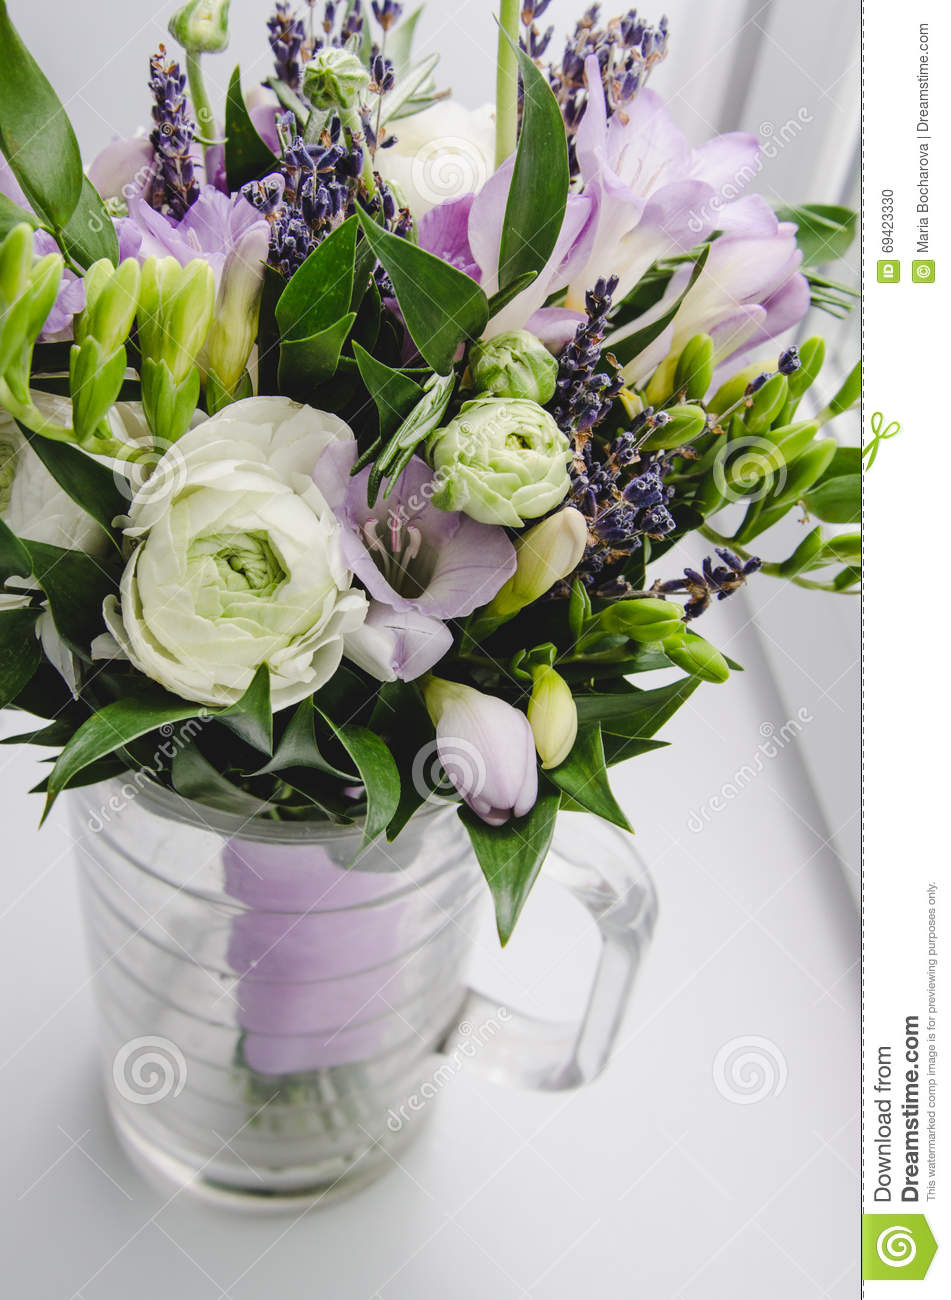 beautiful spring bouquet of wedding flowers buttercup ranunculus fresia lavender in vase with. Black Bedroom Furniture Sets. Home Design Ideas